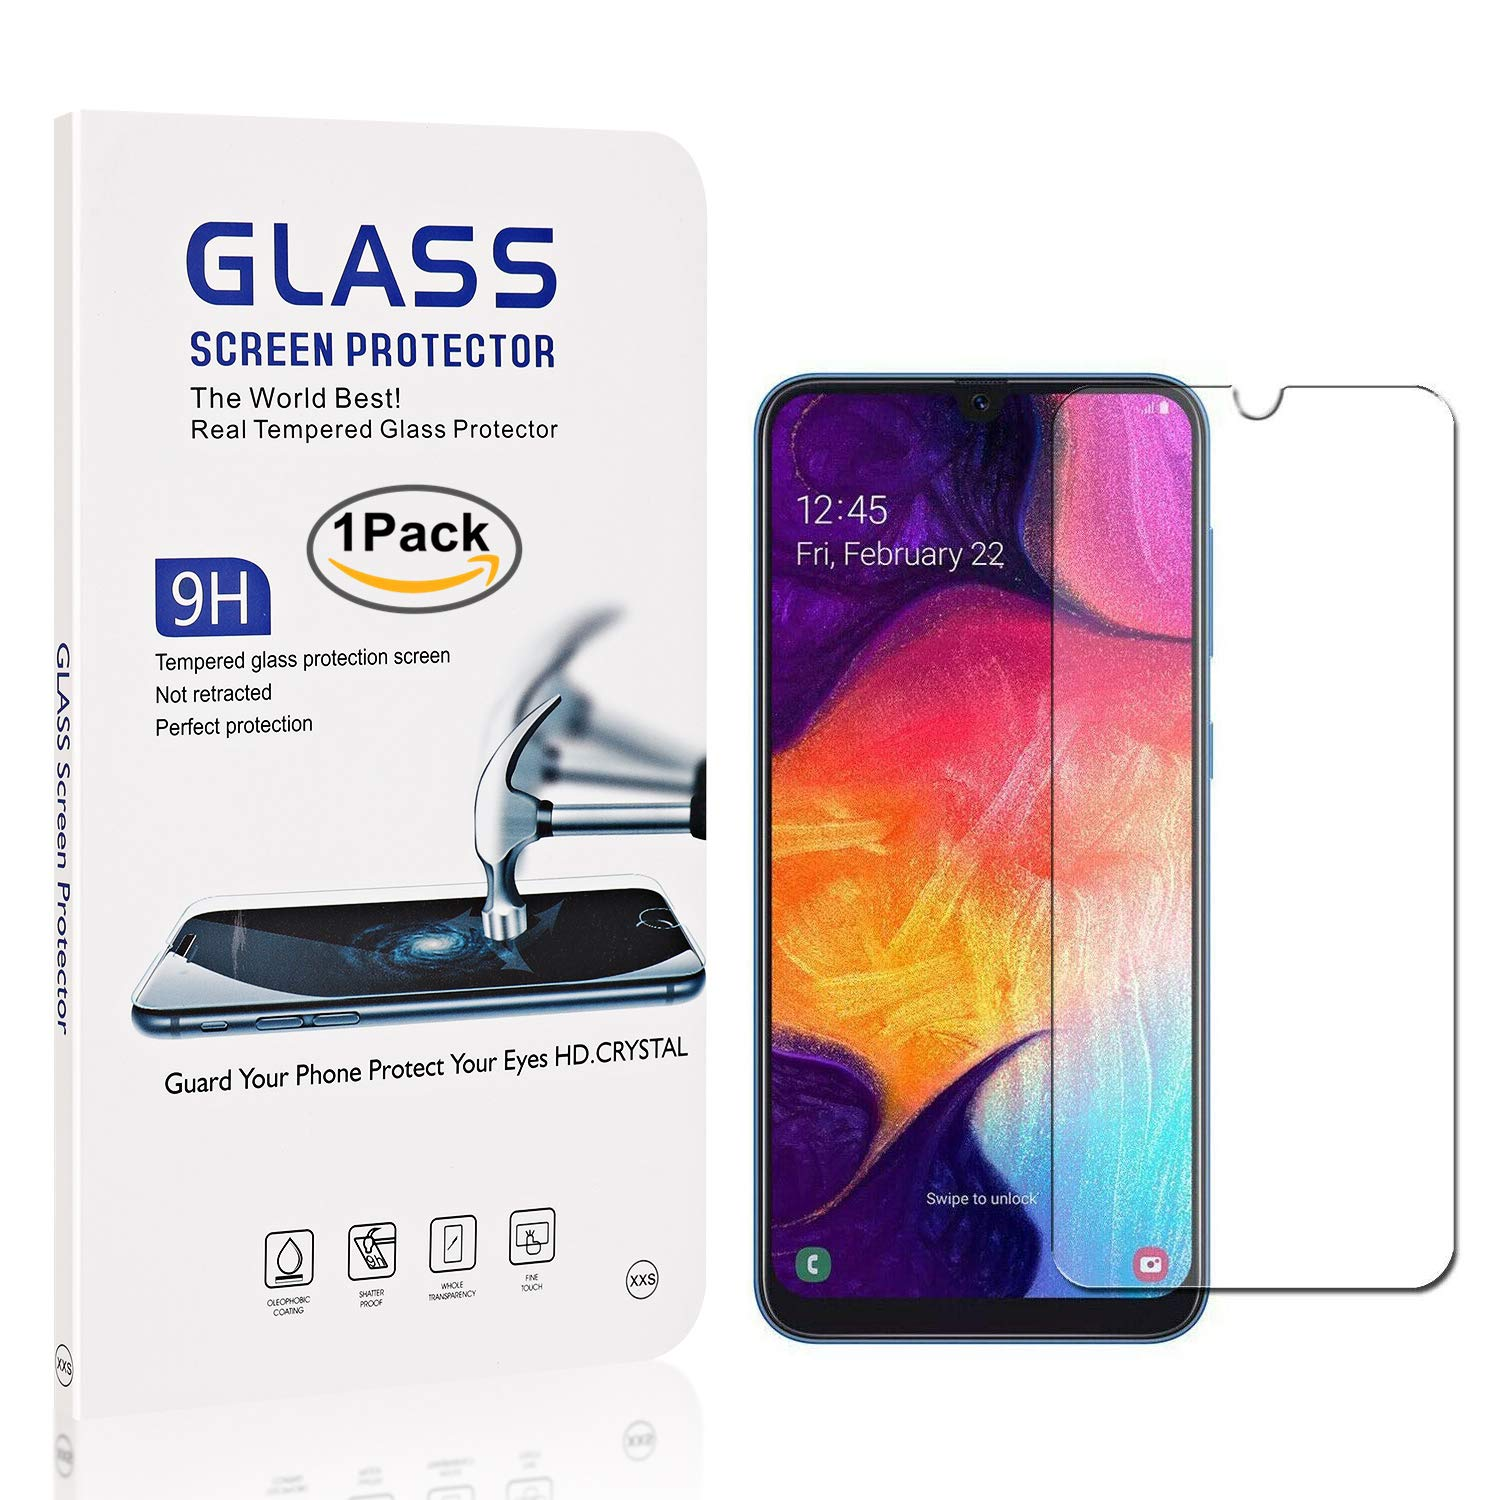 Anti Scratch Screen Protector Bear Village/® Tempered Glass Screen Protector for Galaxy A30 3 Pack 9H Hardness Screen Protector Film for Samsung Galaxy A30